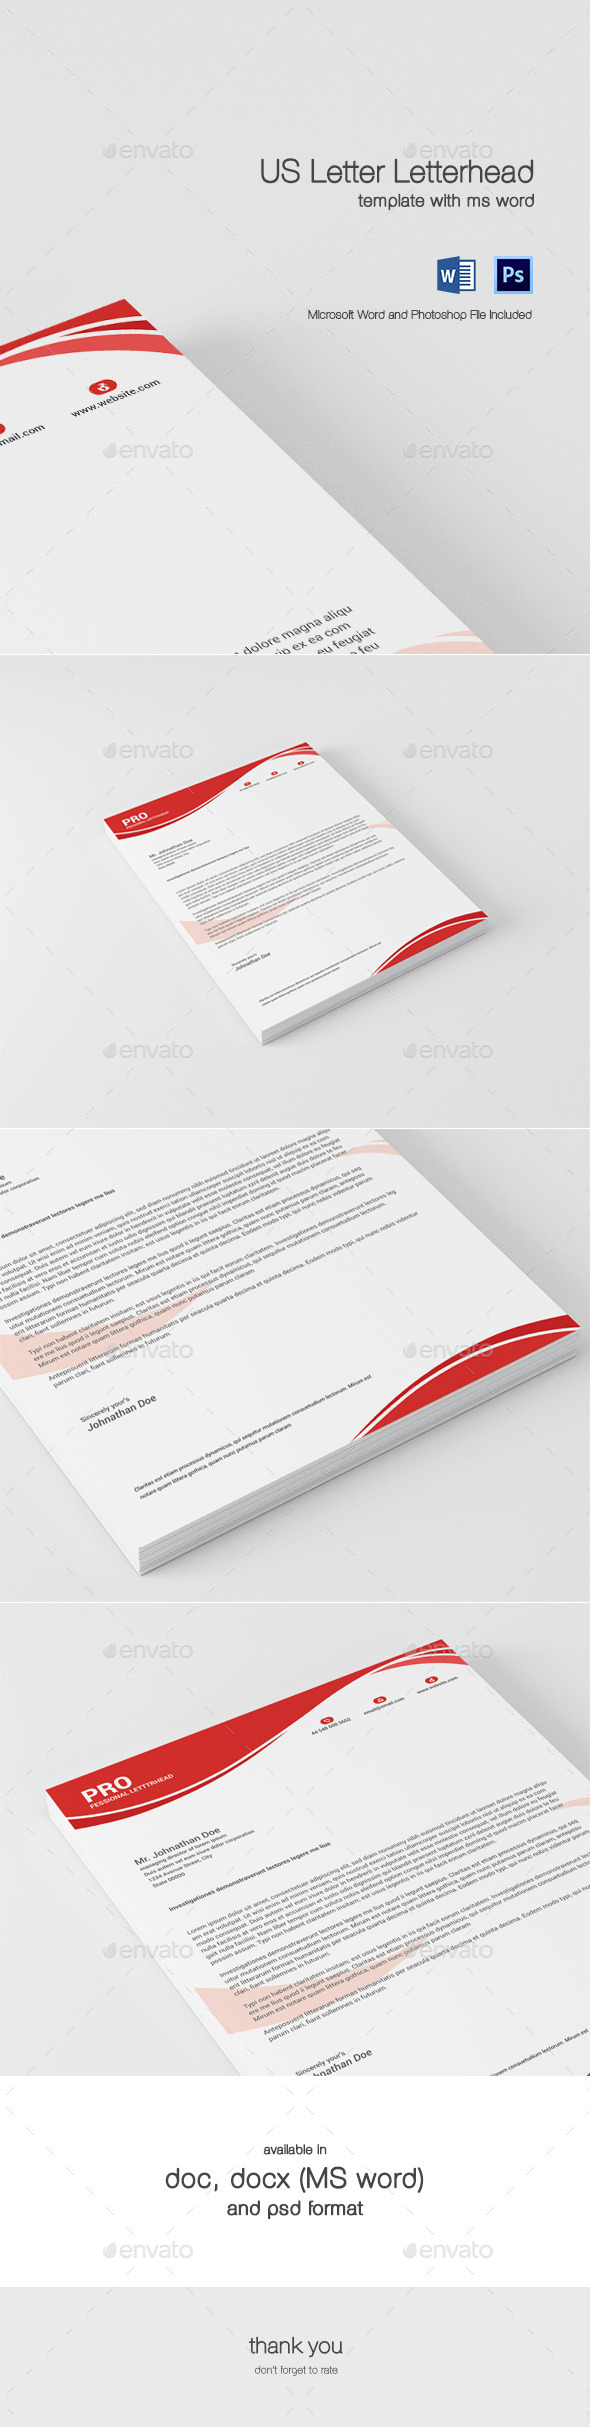 US Letter Letterhead With MS Word